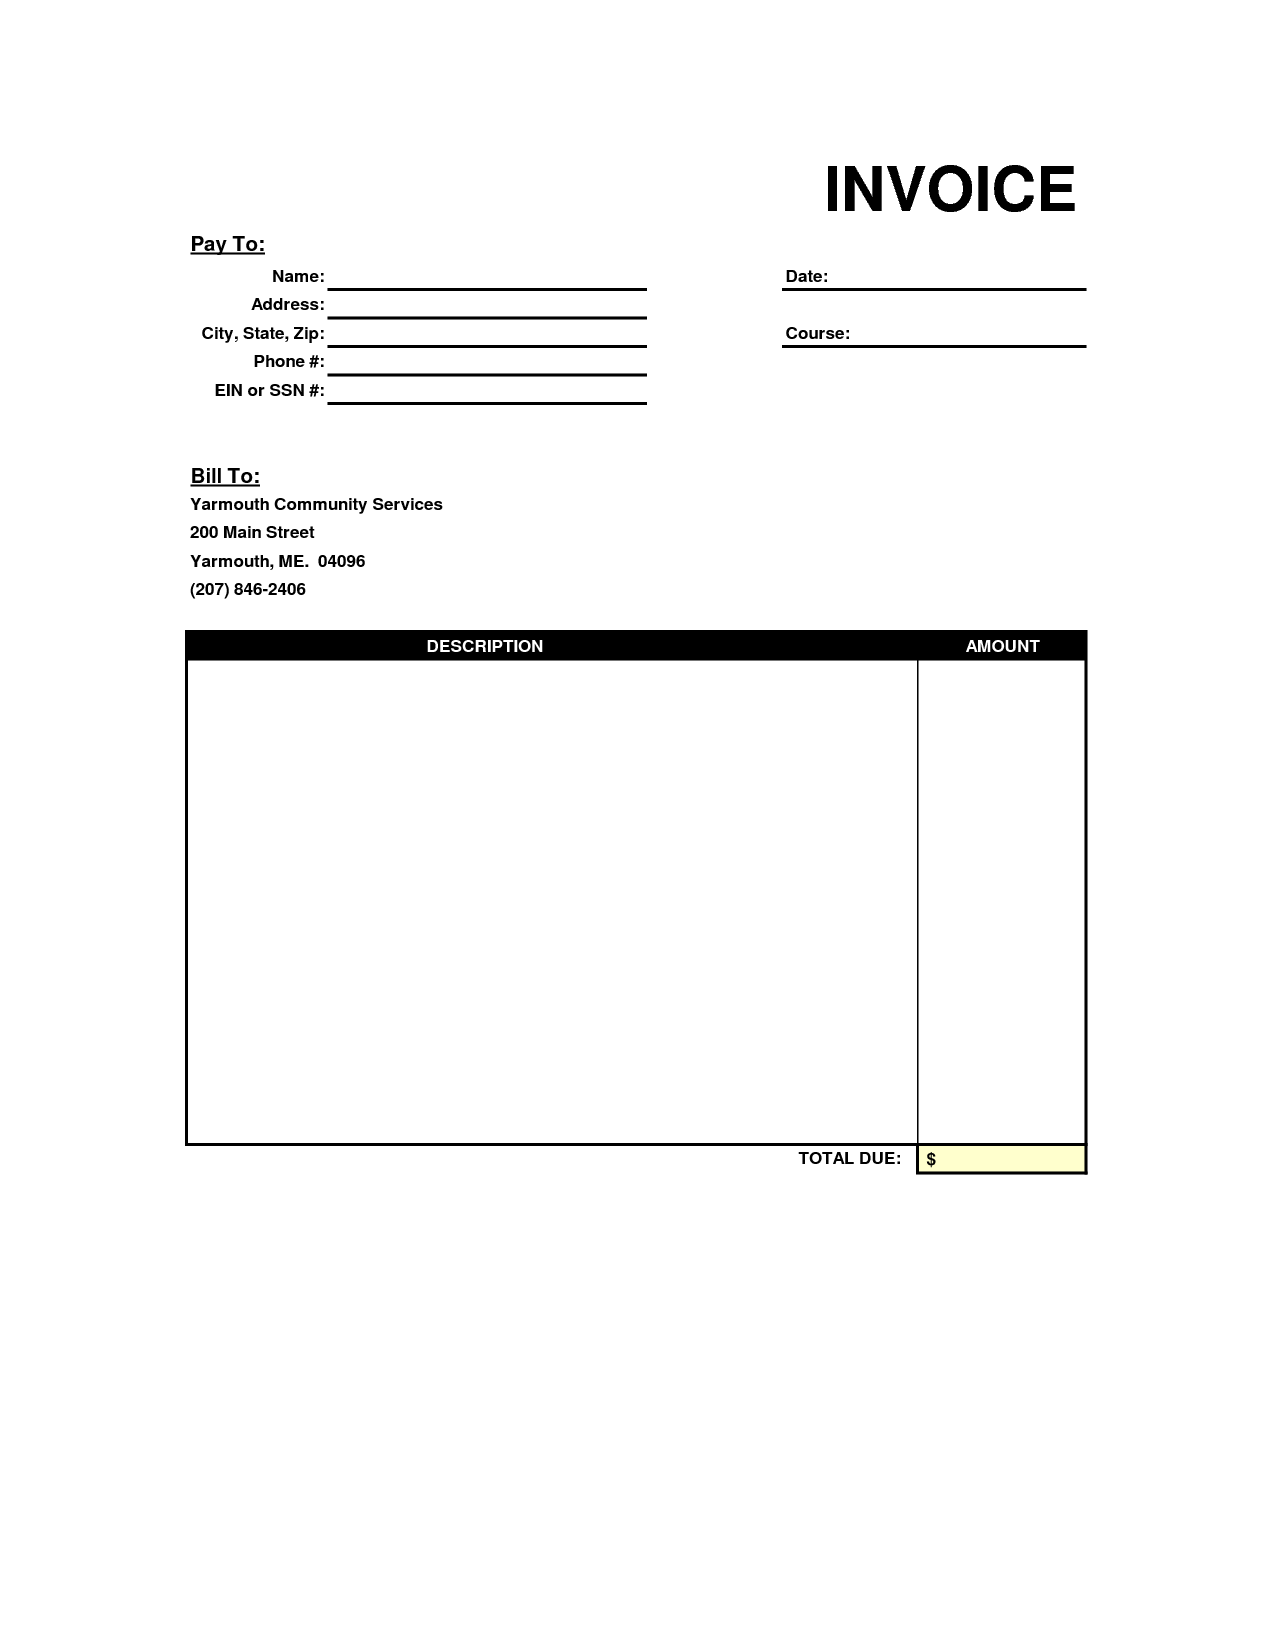 Sample Invoices Excel and Free 5 Printable Blank Invoice Template form Word Excel social